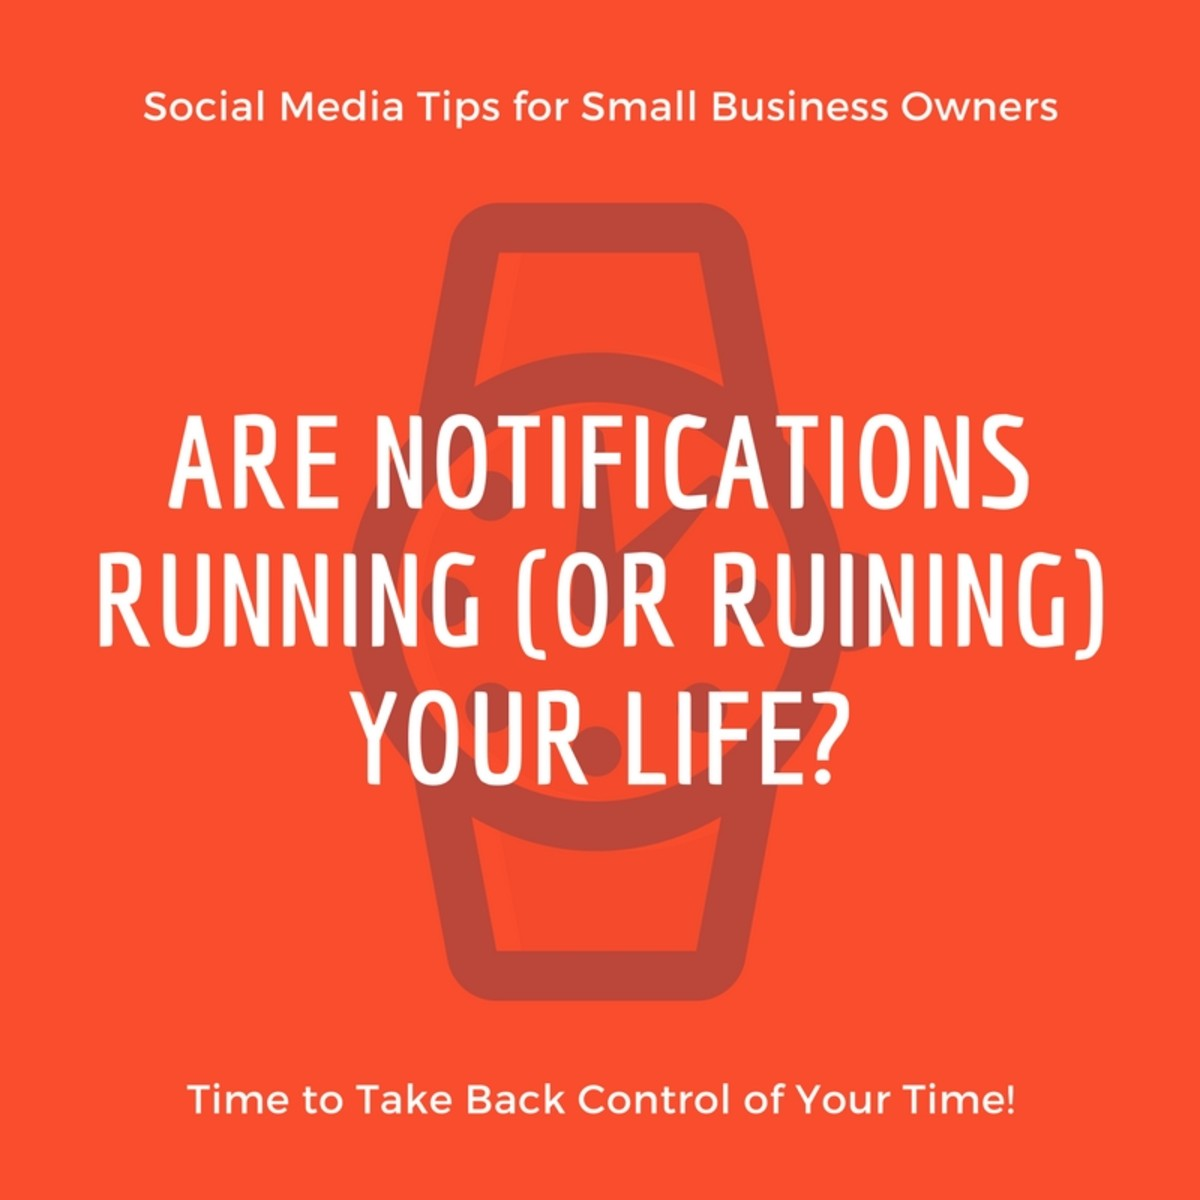 Are notifications ruining your life?